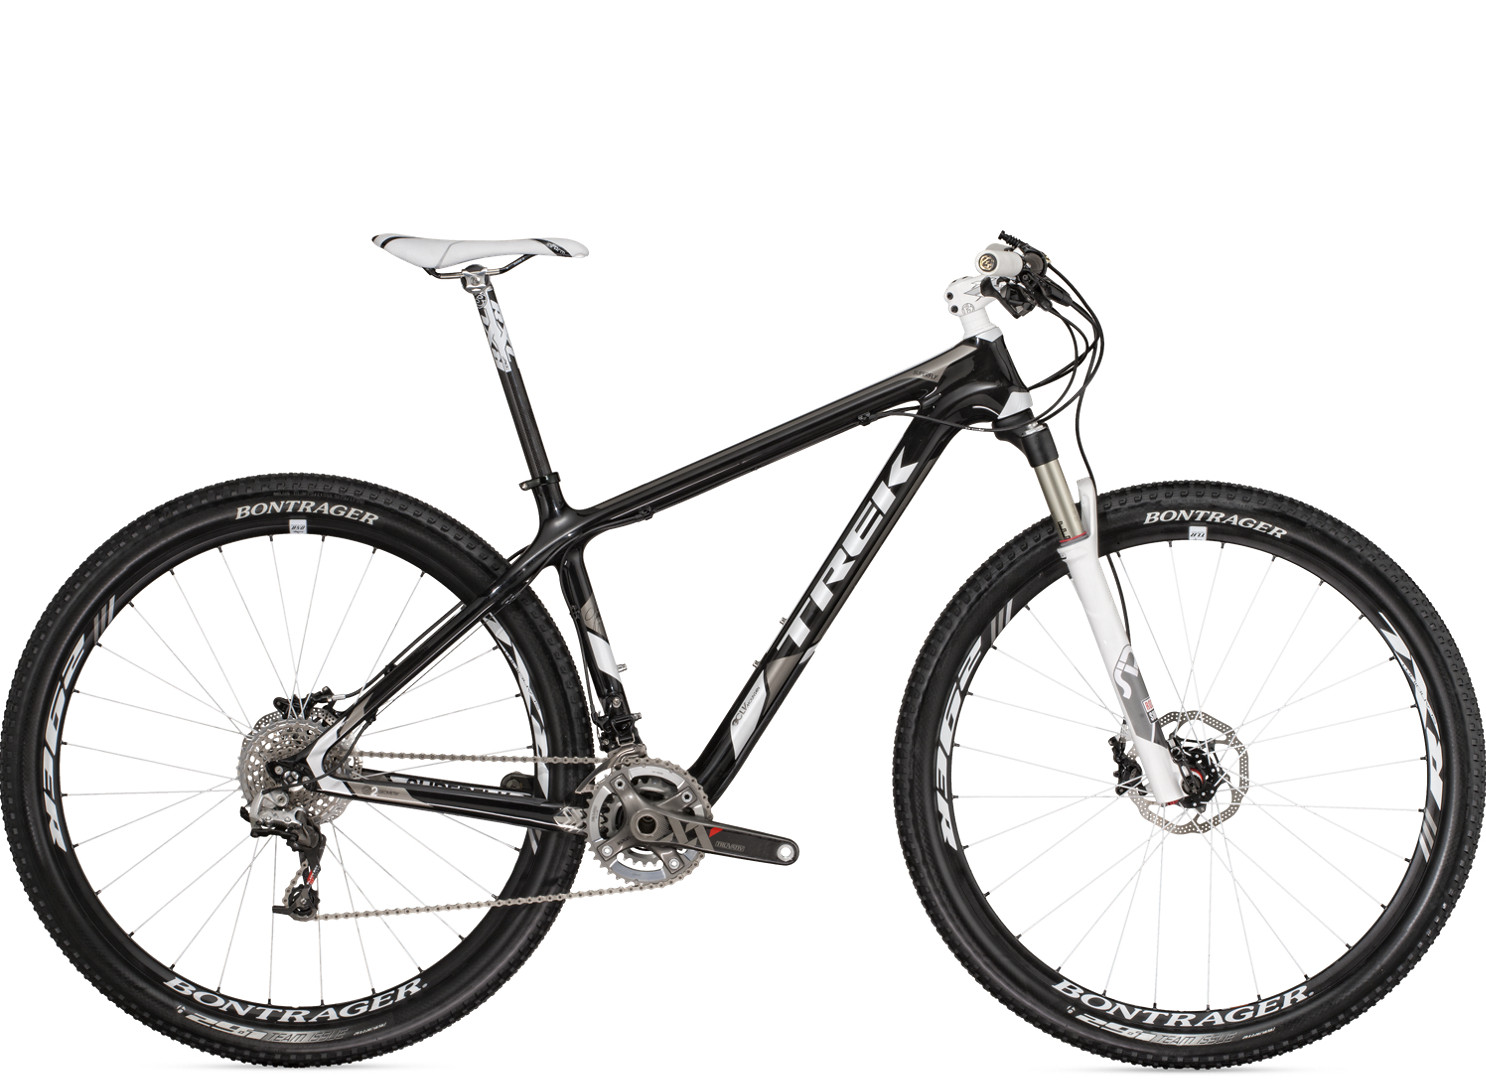 2012 Trek Superfly Pro Bike 23376